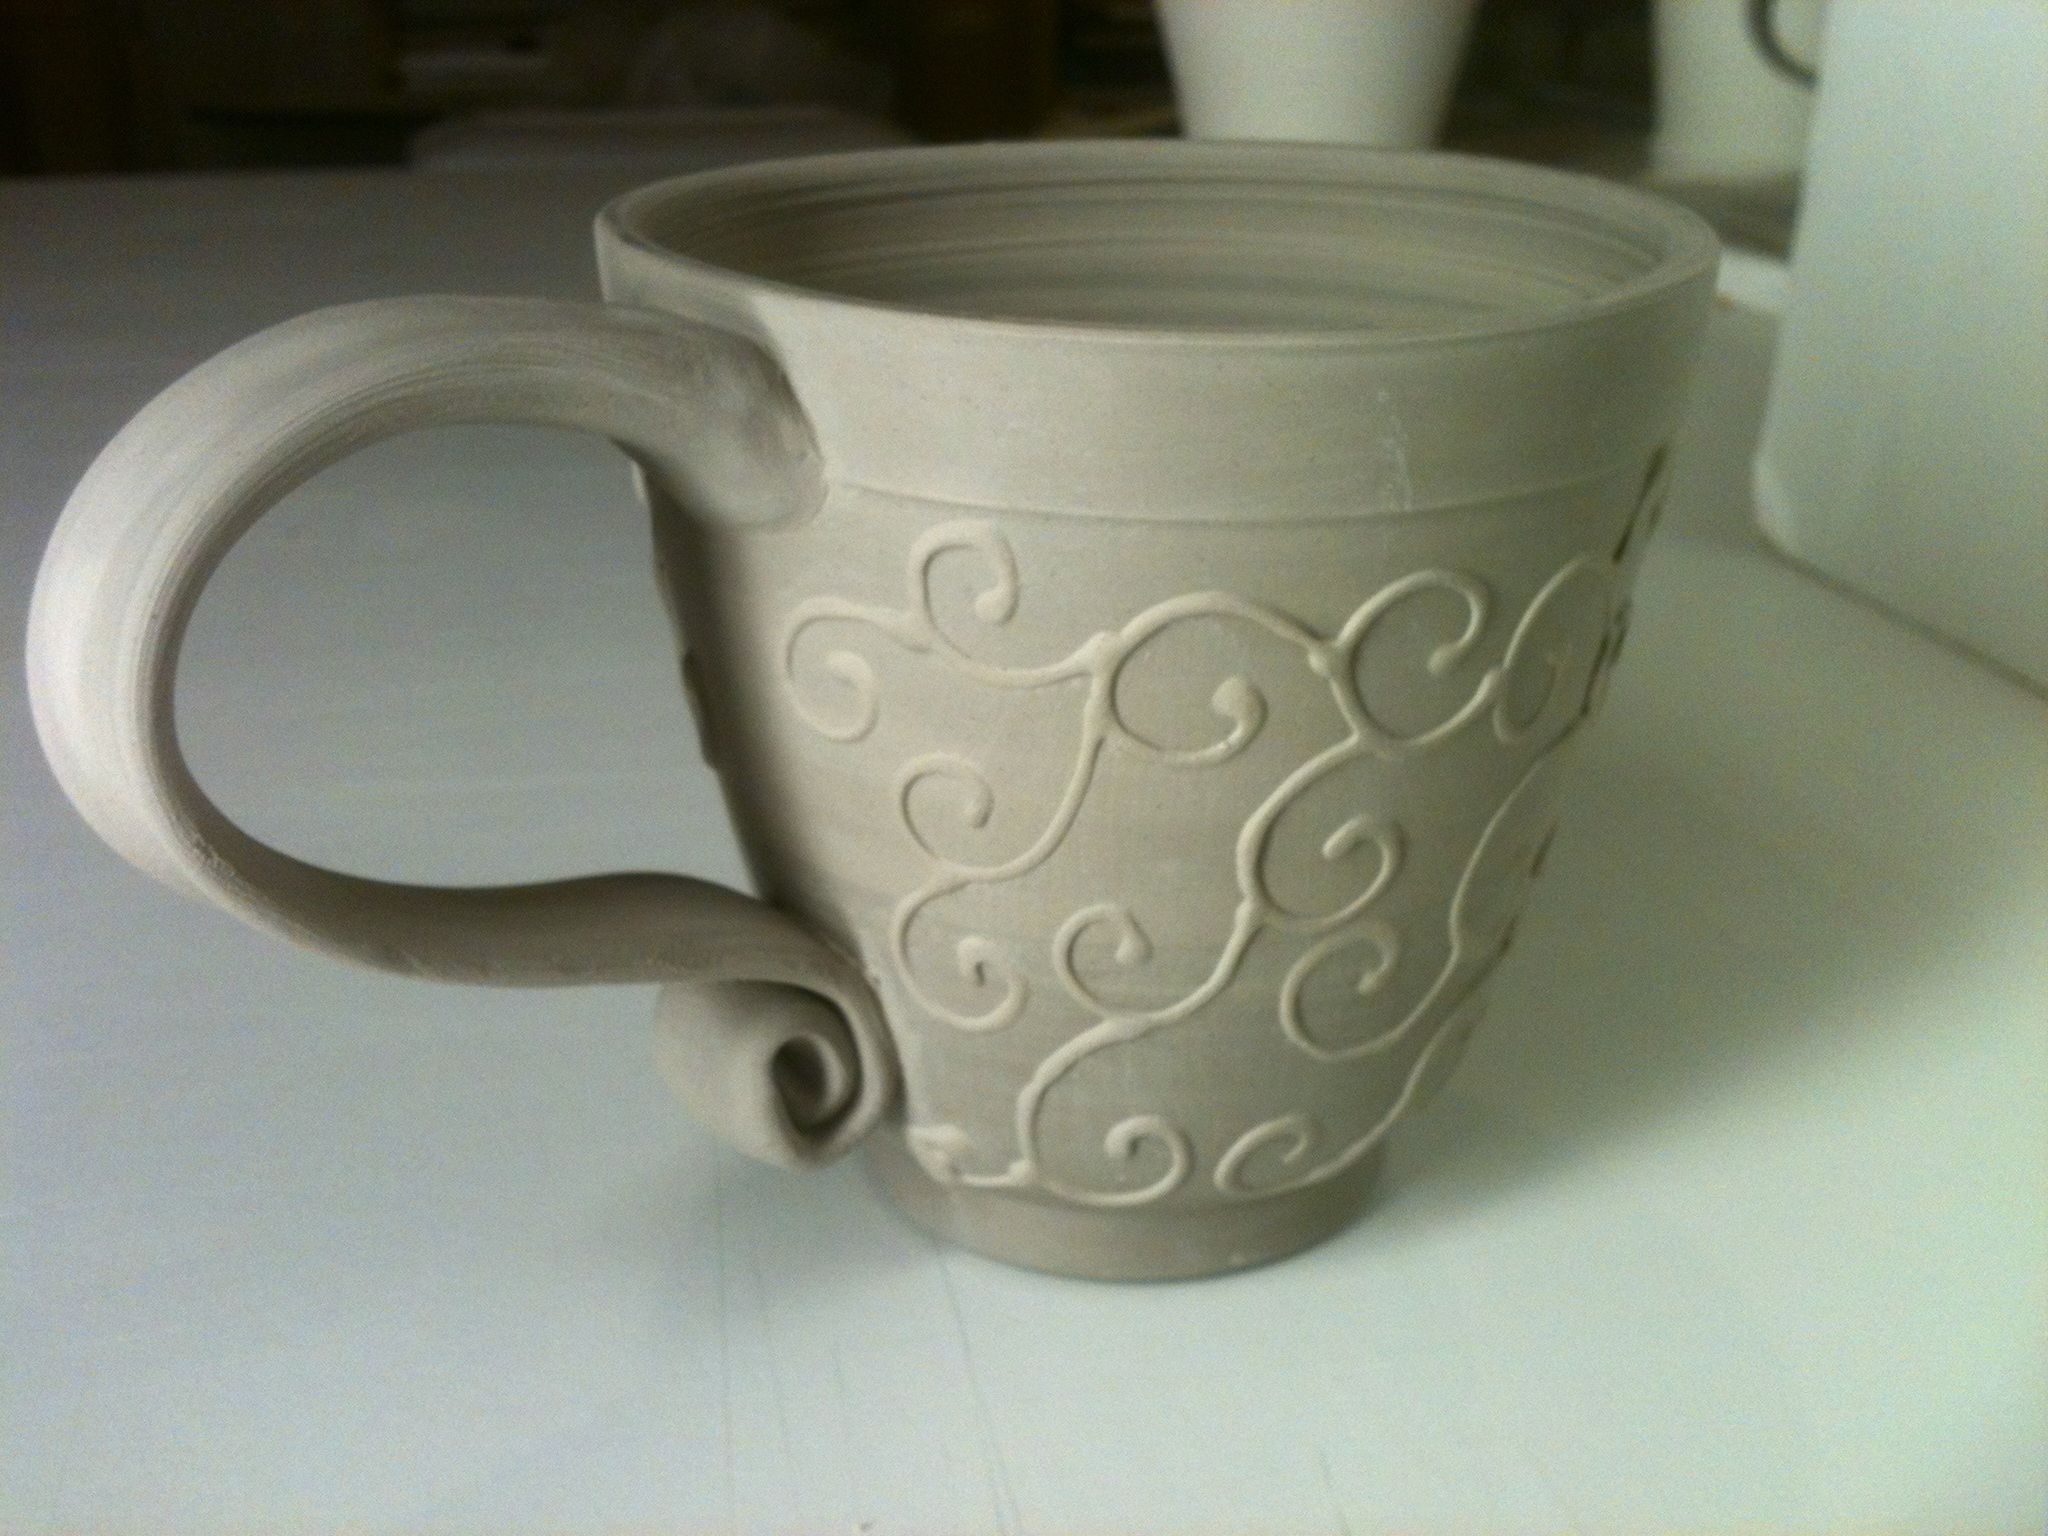 hand building pottery ideas new mug design ideas symmetrical pottery new mugs 03 - Pottery Design Ideas